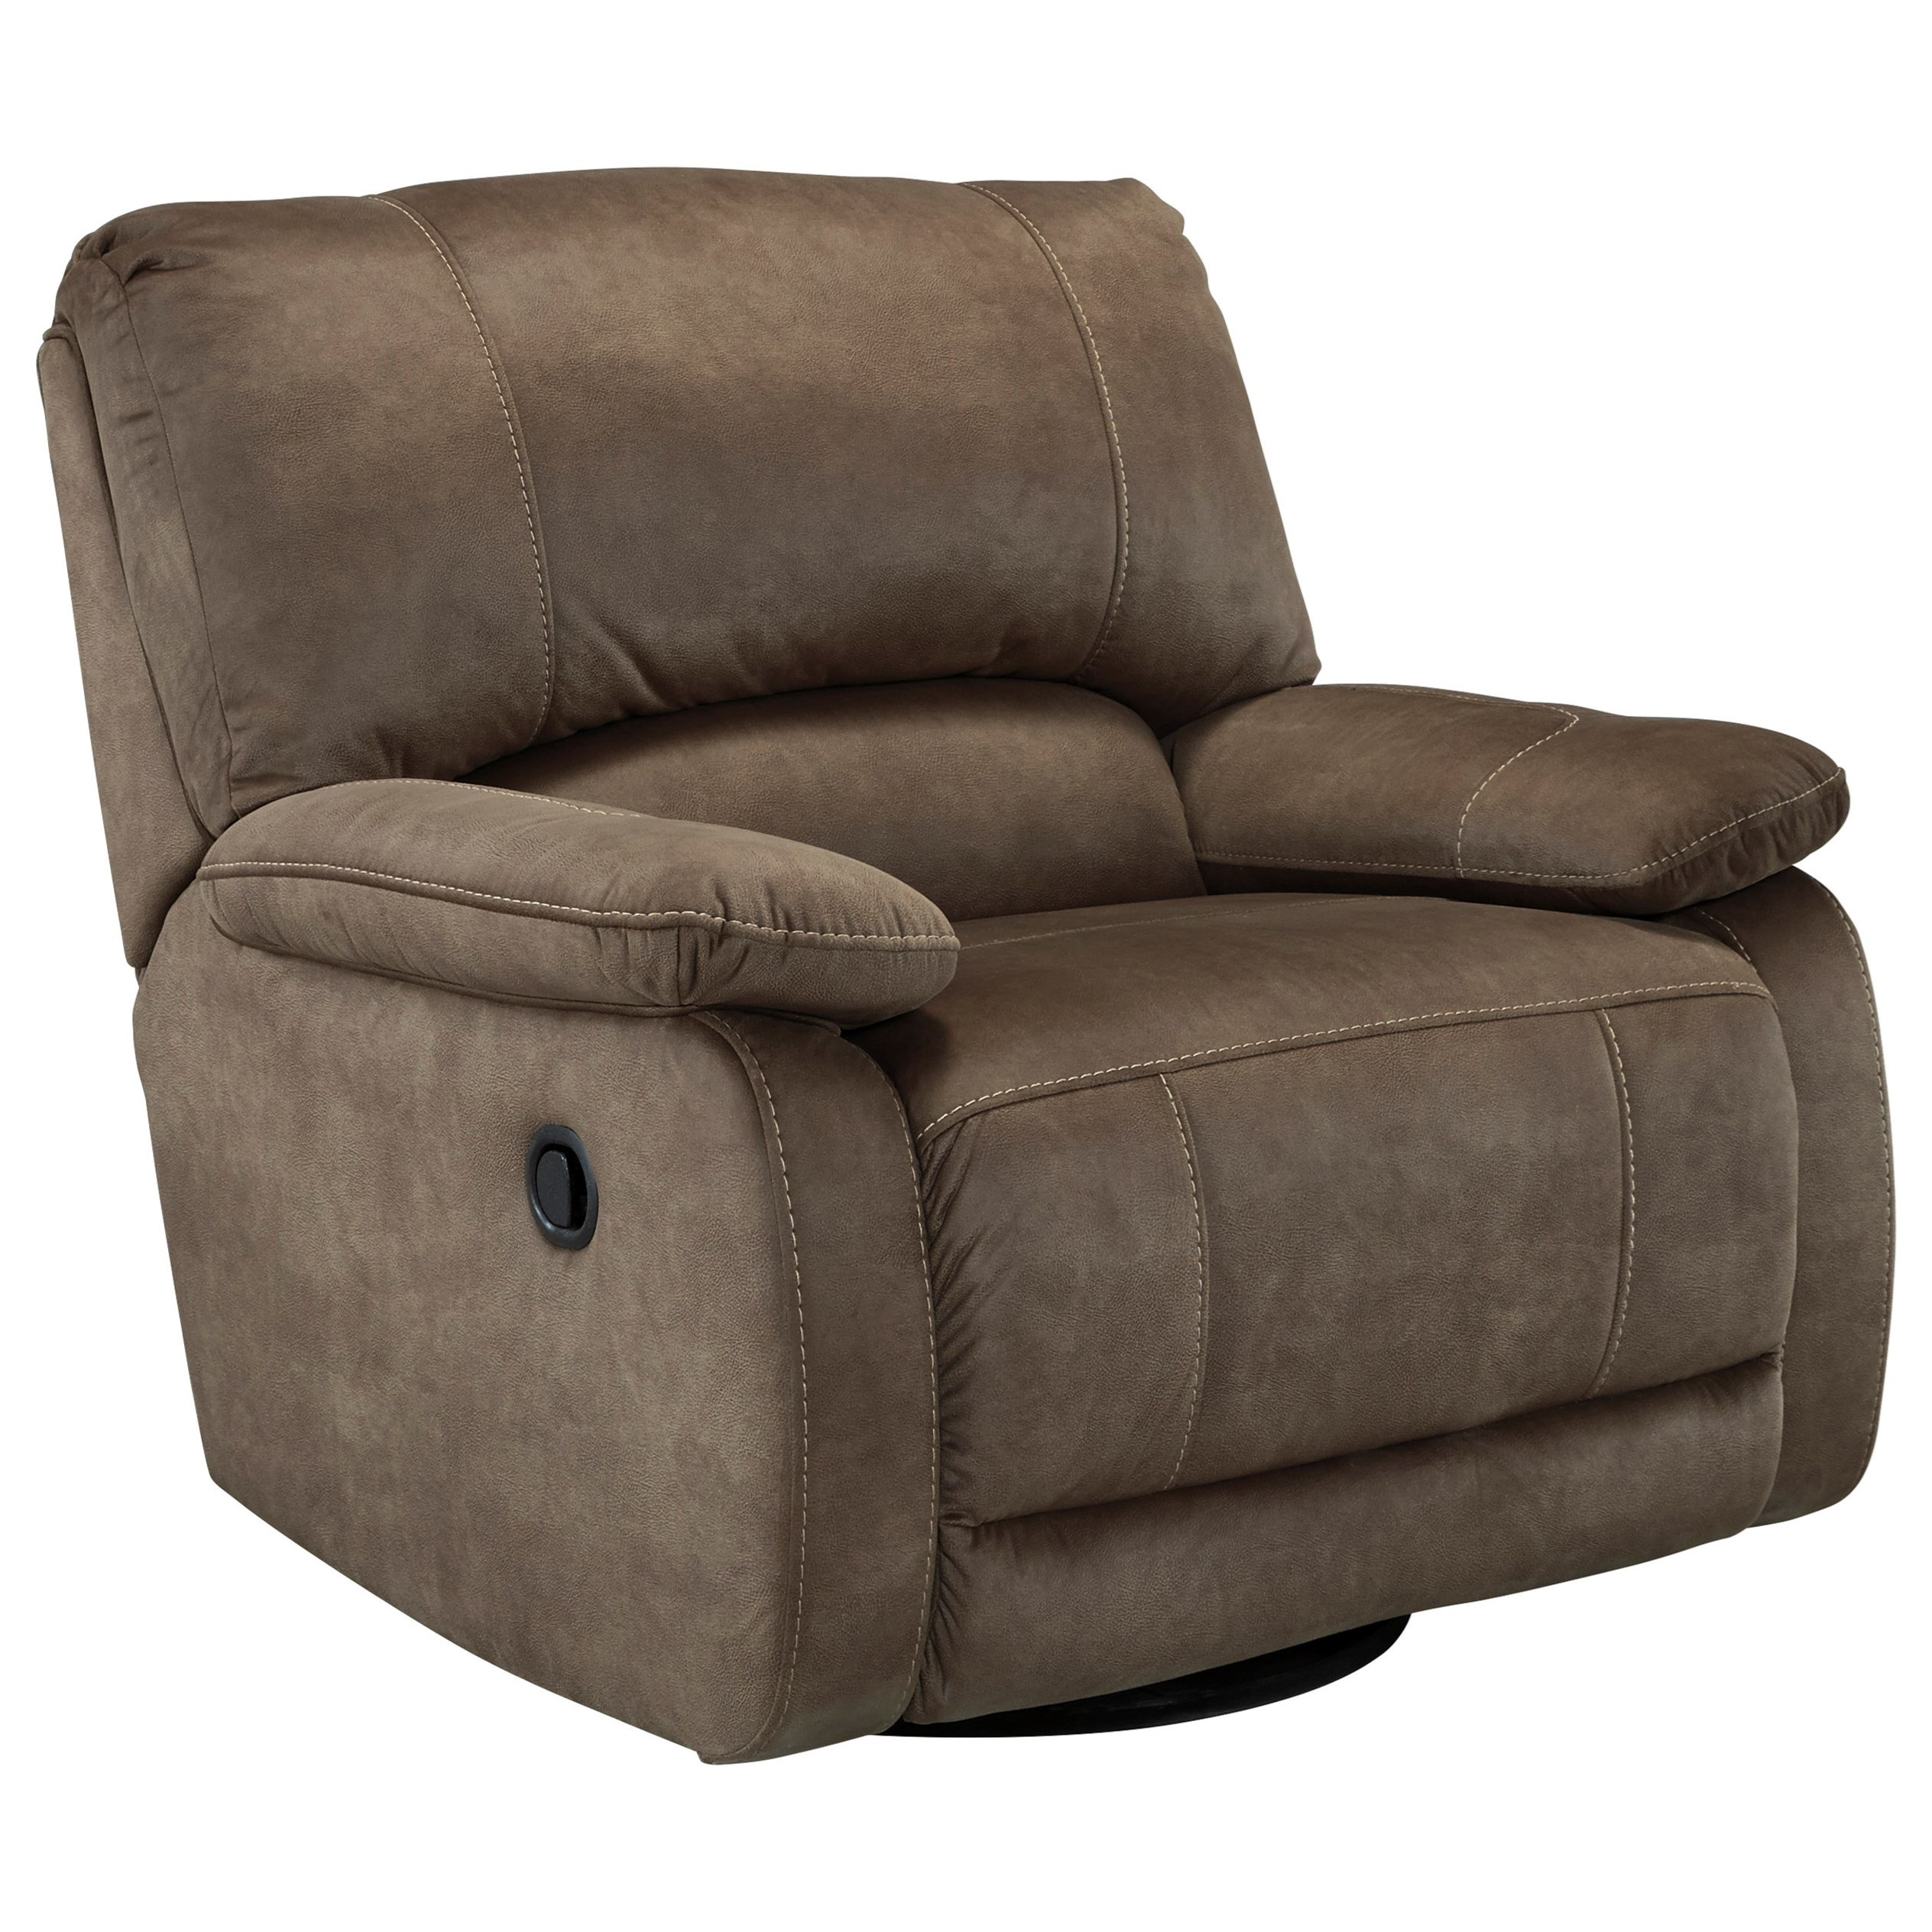 Signature Design by Ashley Seamus Swivel Glider Recliner - Item Number: 4180061